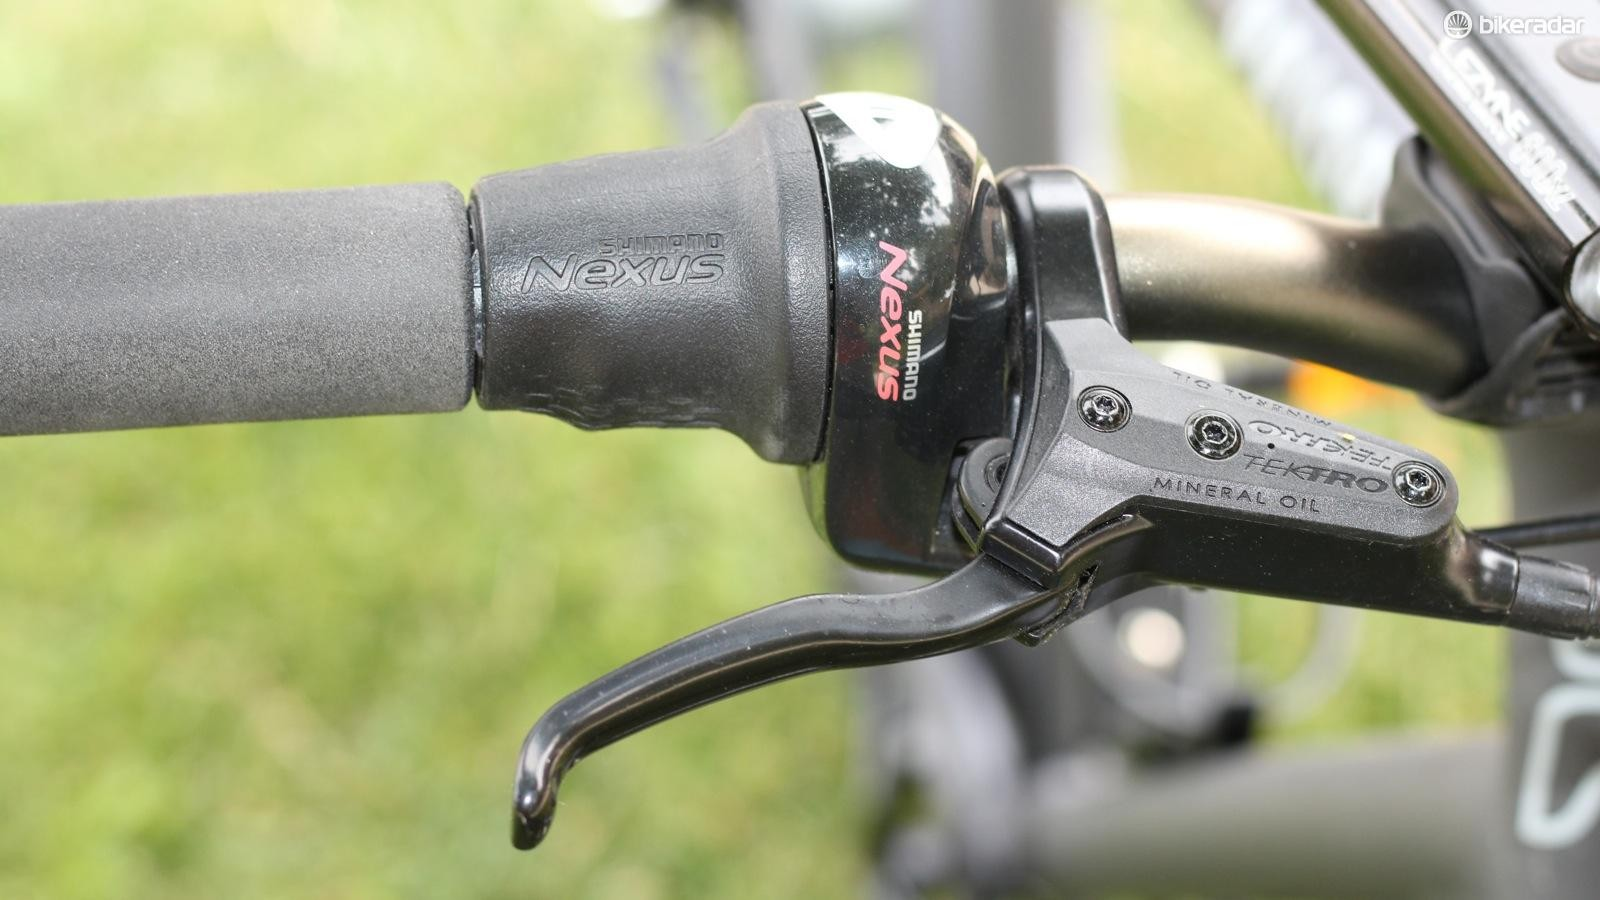 Shimano's Nexus drivetrain is simple and reliable